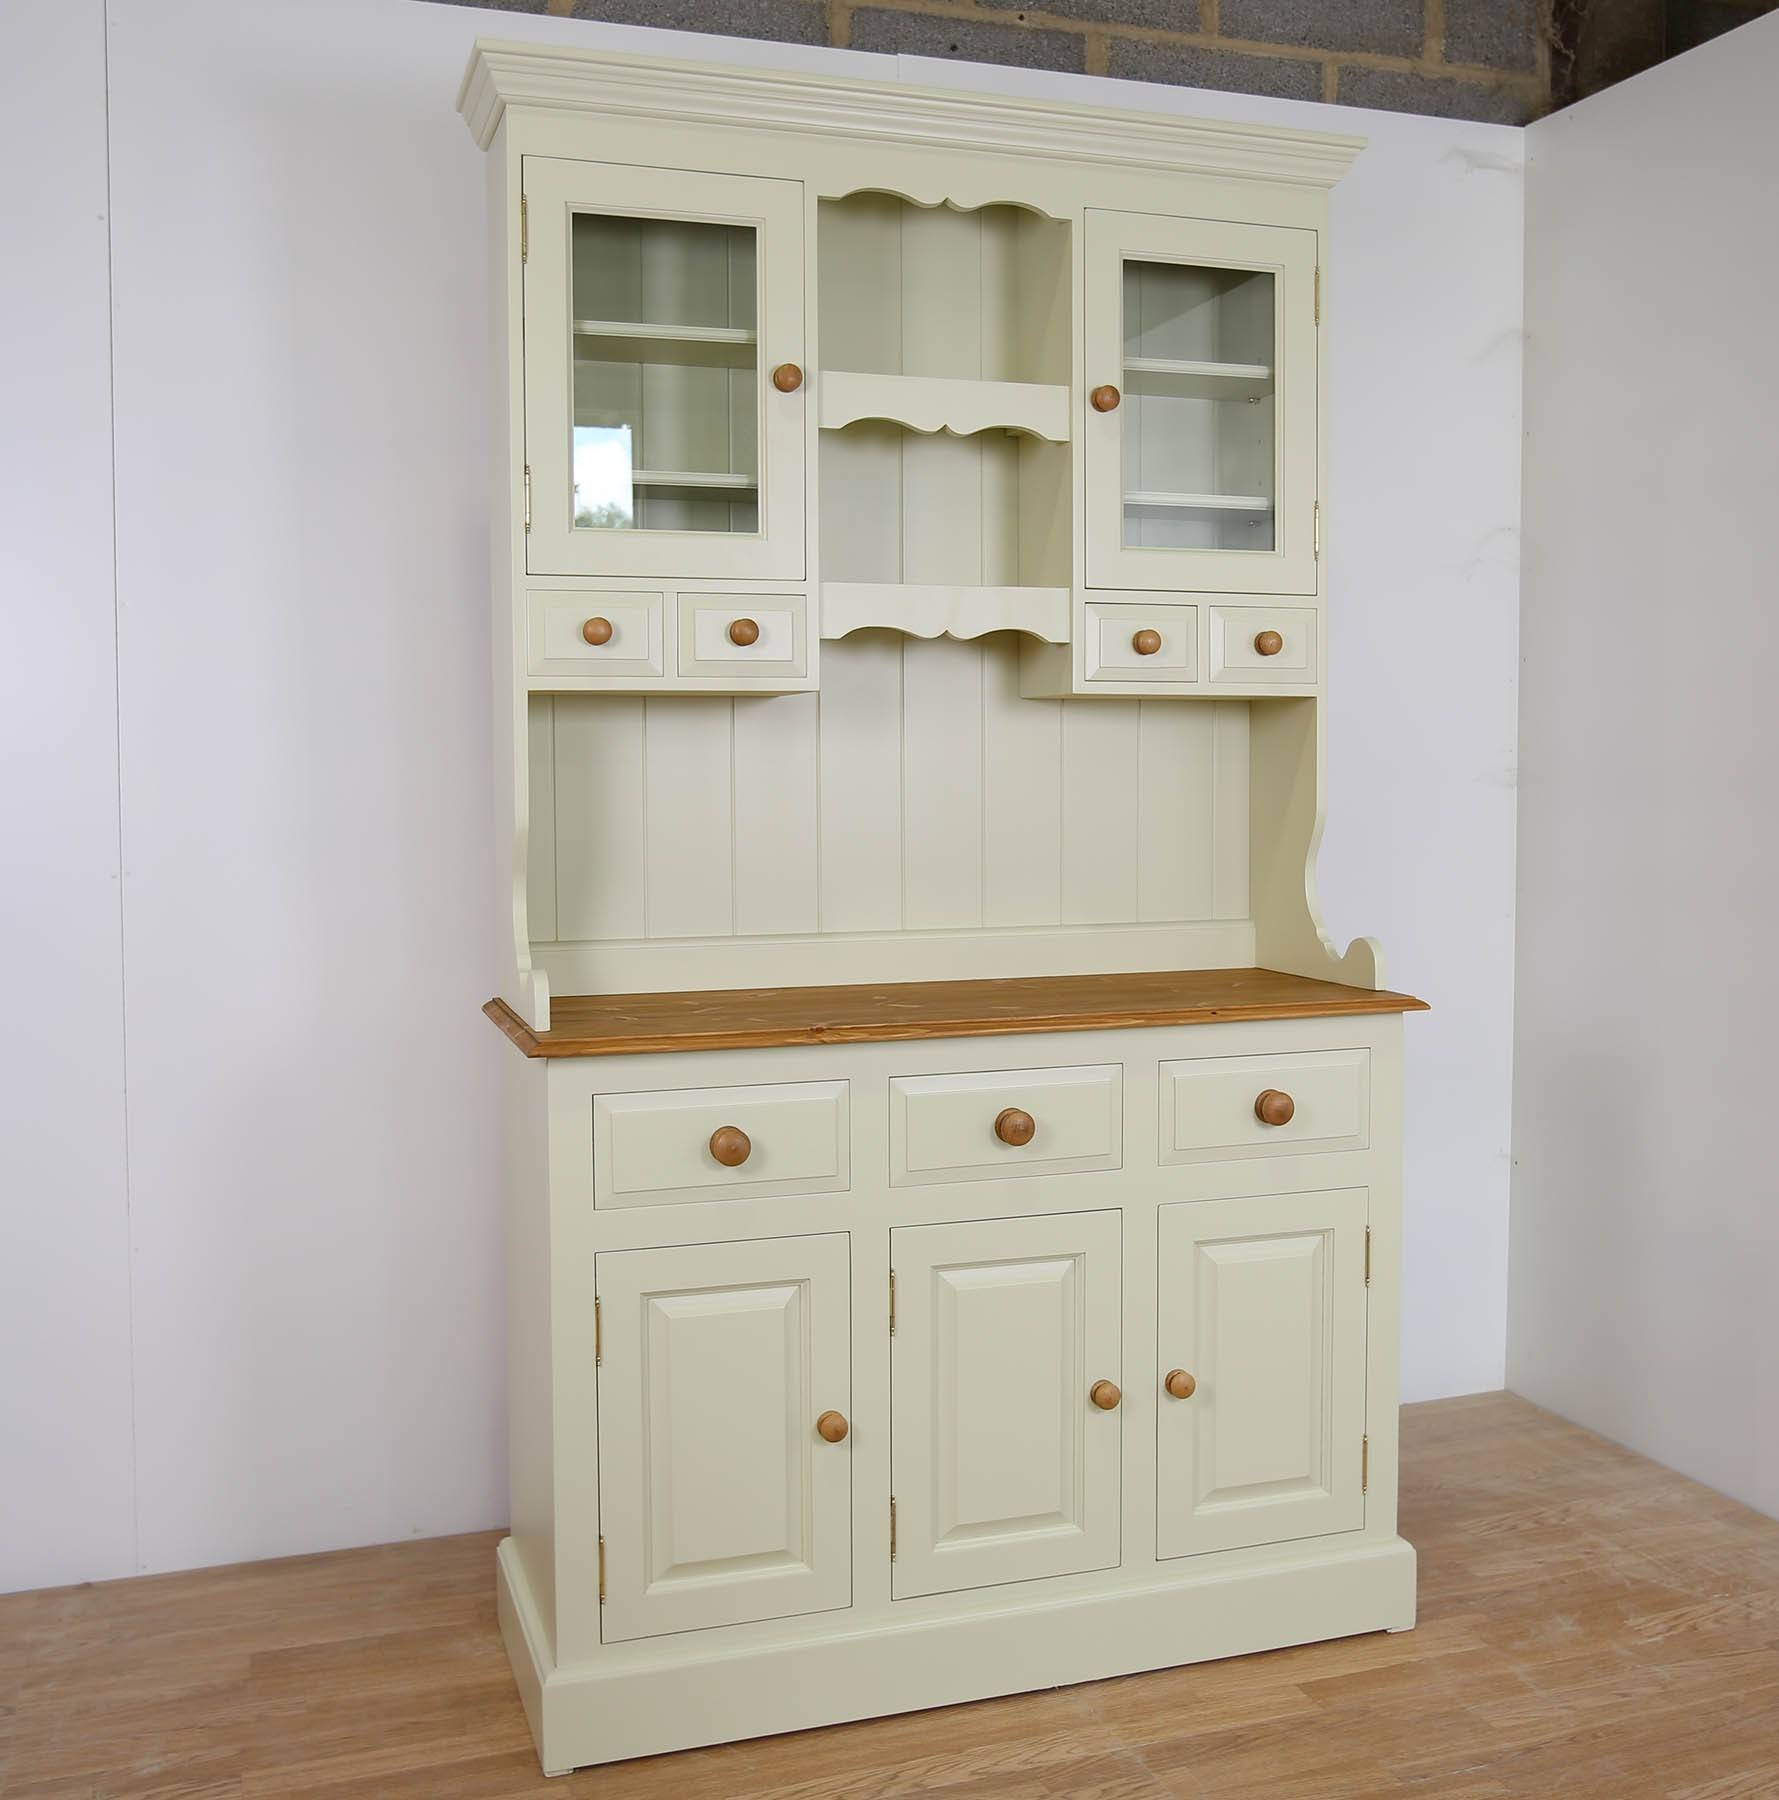 Farrow And Ball Painted 3 Door Part Glazed Dresser In 3 Sizes for Farrow and Ball Painted Wardrobes (Image 11 of 15)